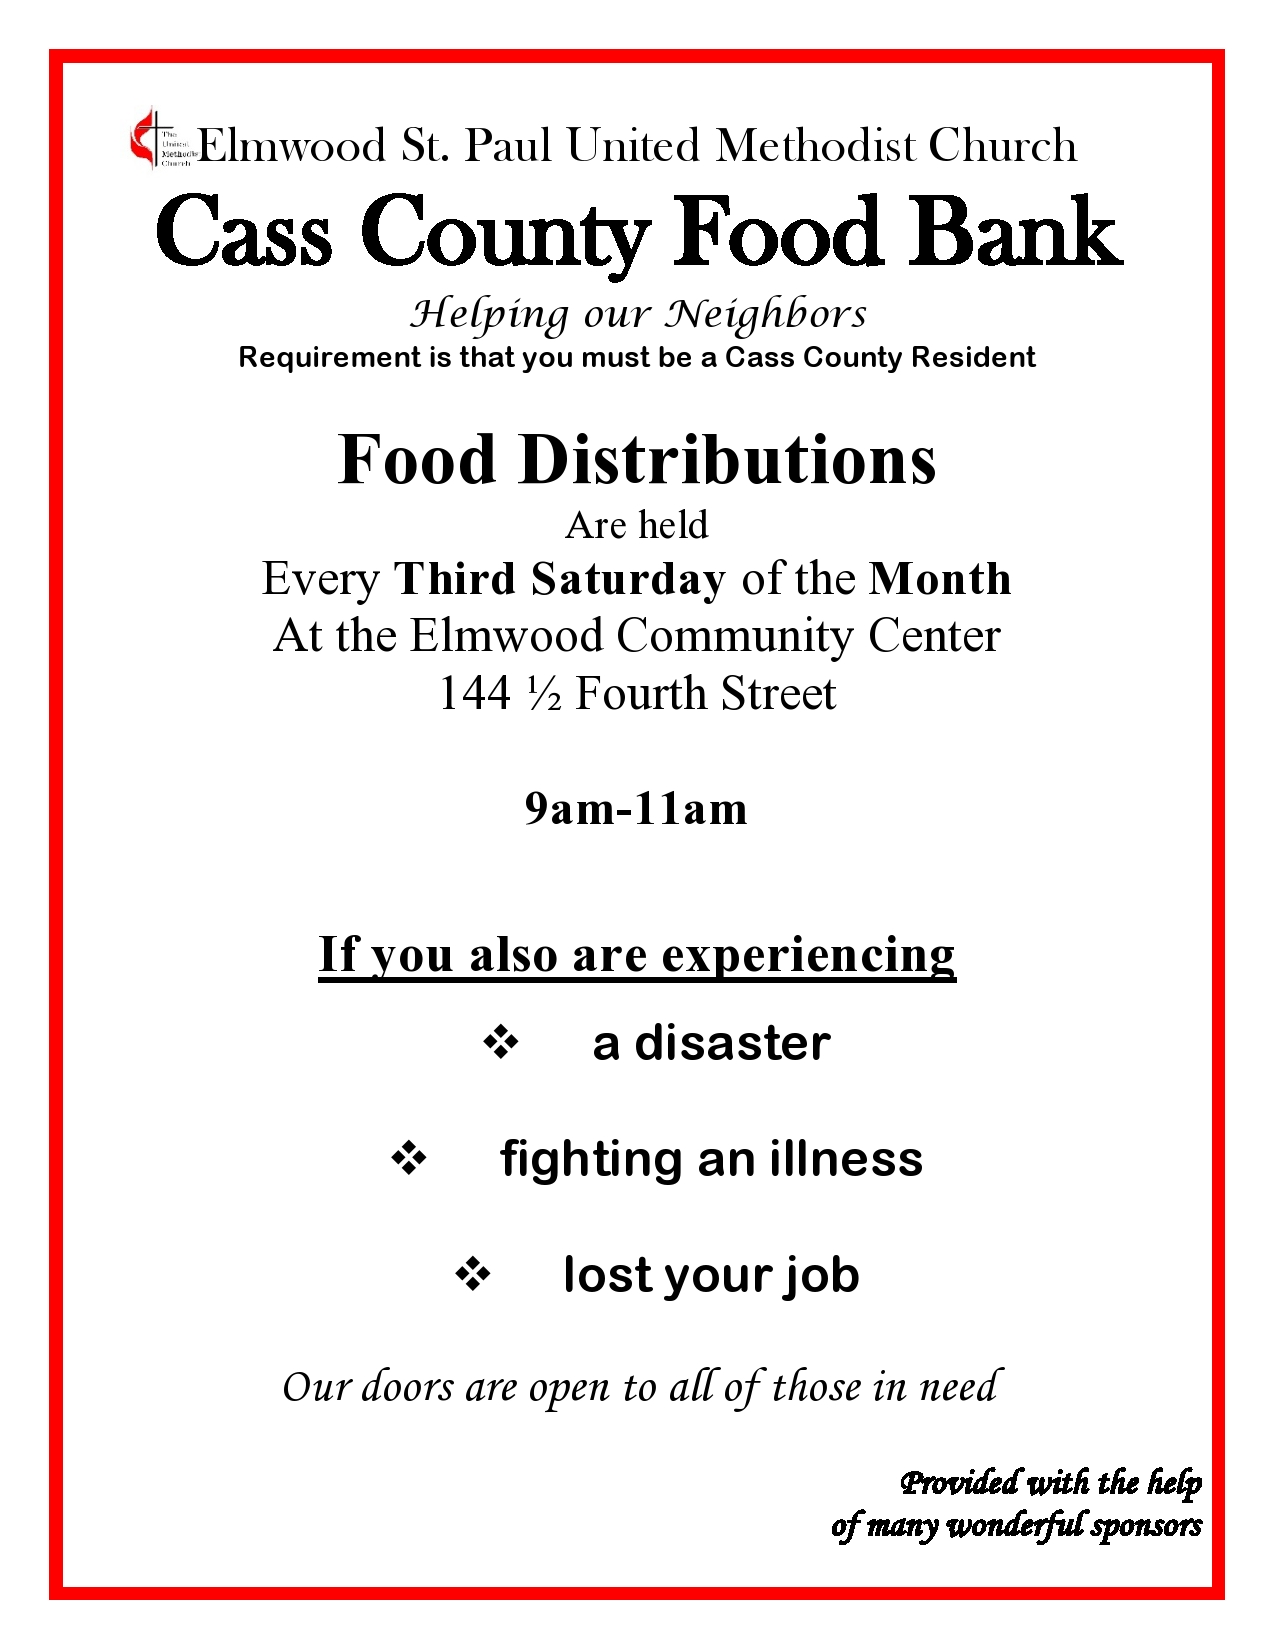 Cass Co Food bank 2019